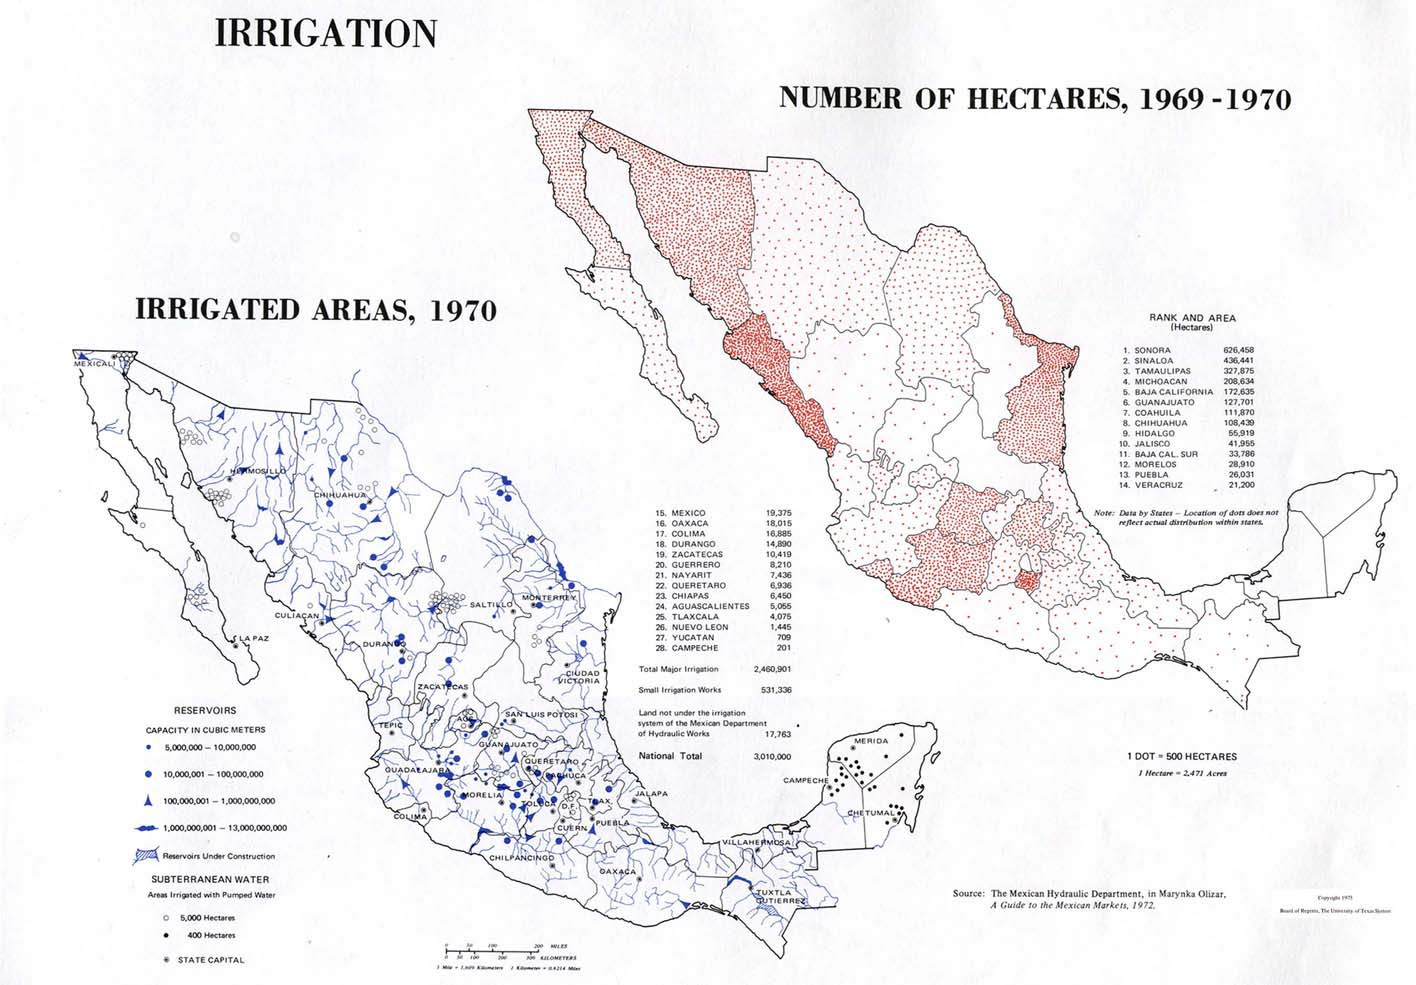 Irrigation in Mexico 1969 - 1970